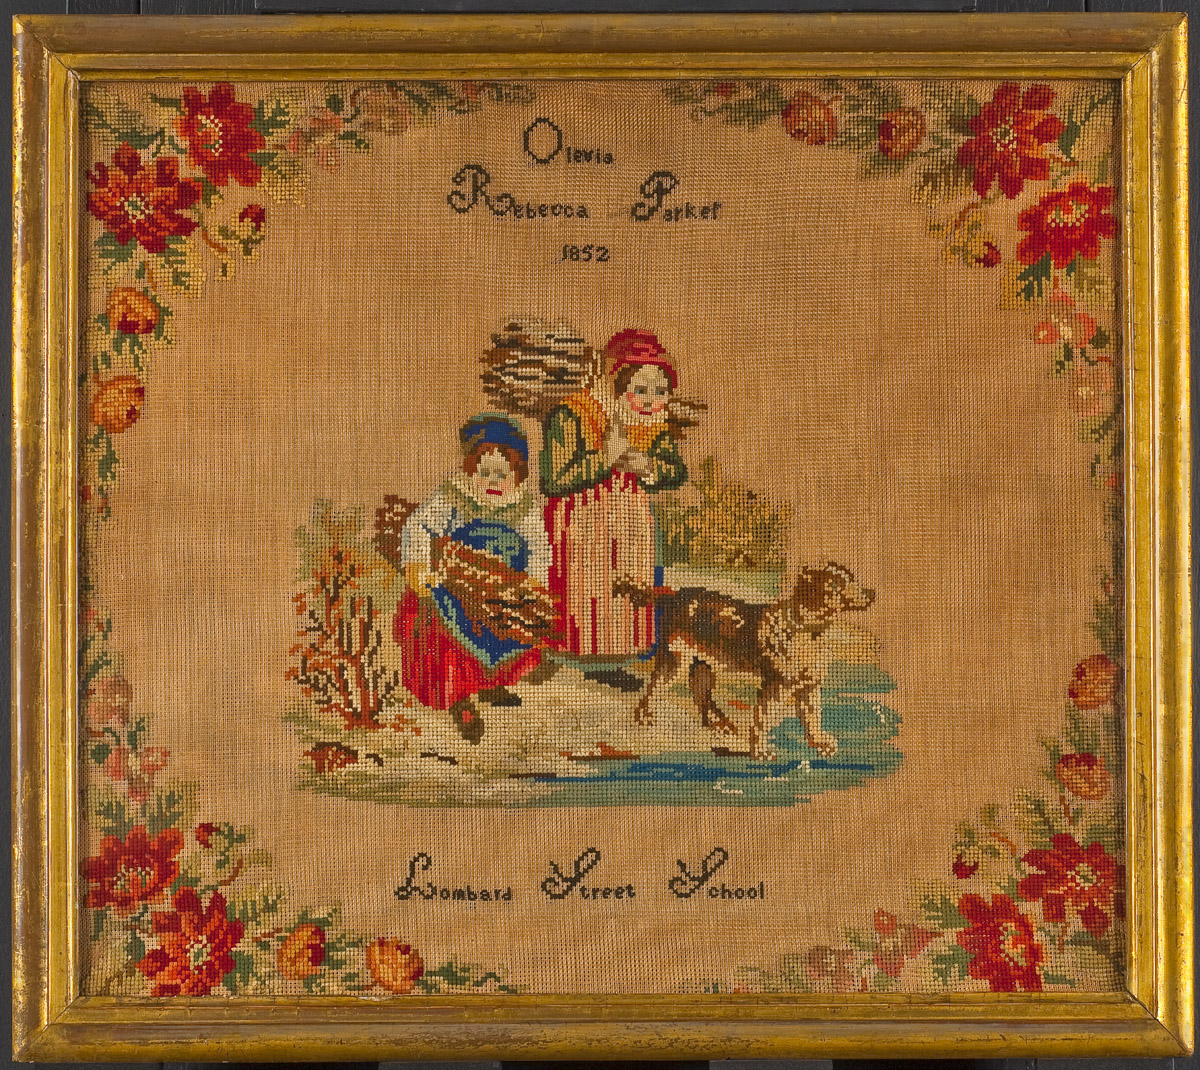 Needlework picture, Olevia Rebecca Parker, Philadelphia, 1852. Museum purchase with funds provided by the Henry Francis du Pont Collectors Circle 2009.12.1